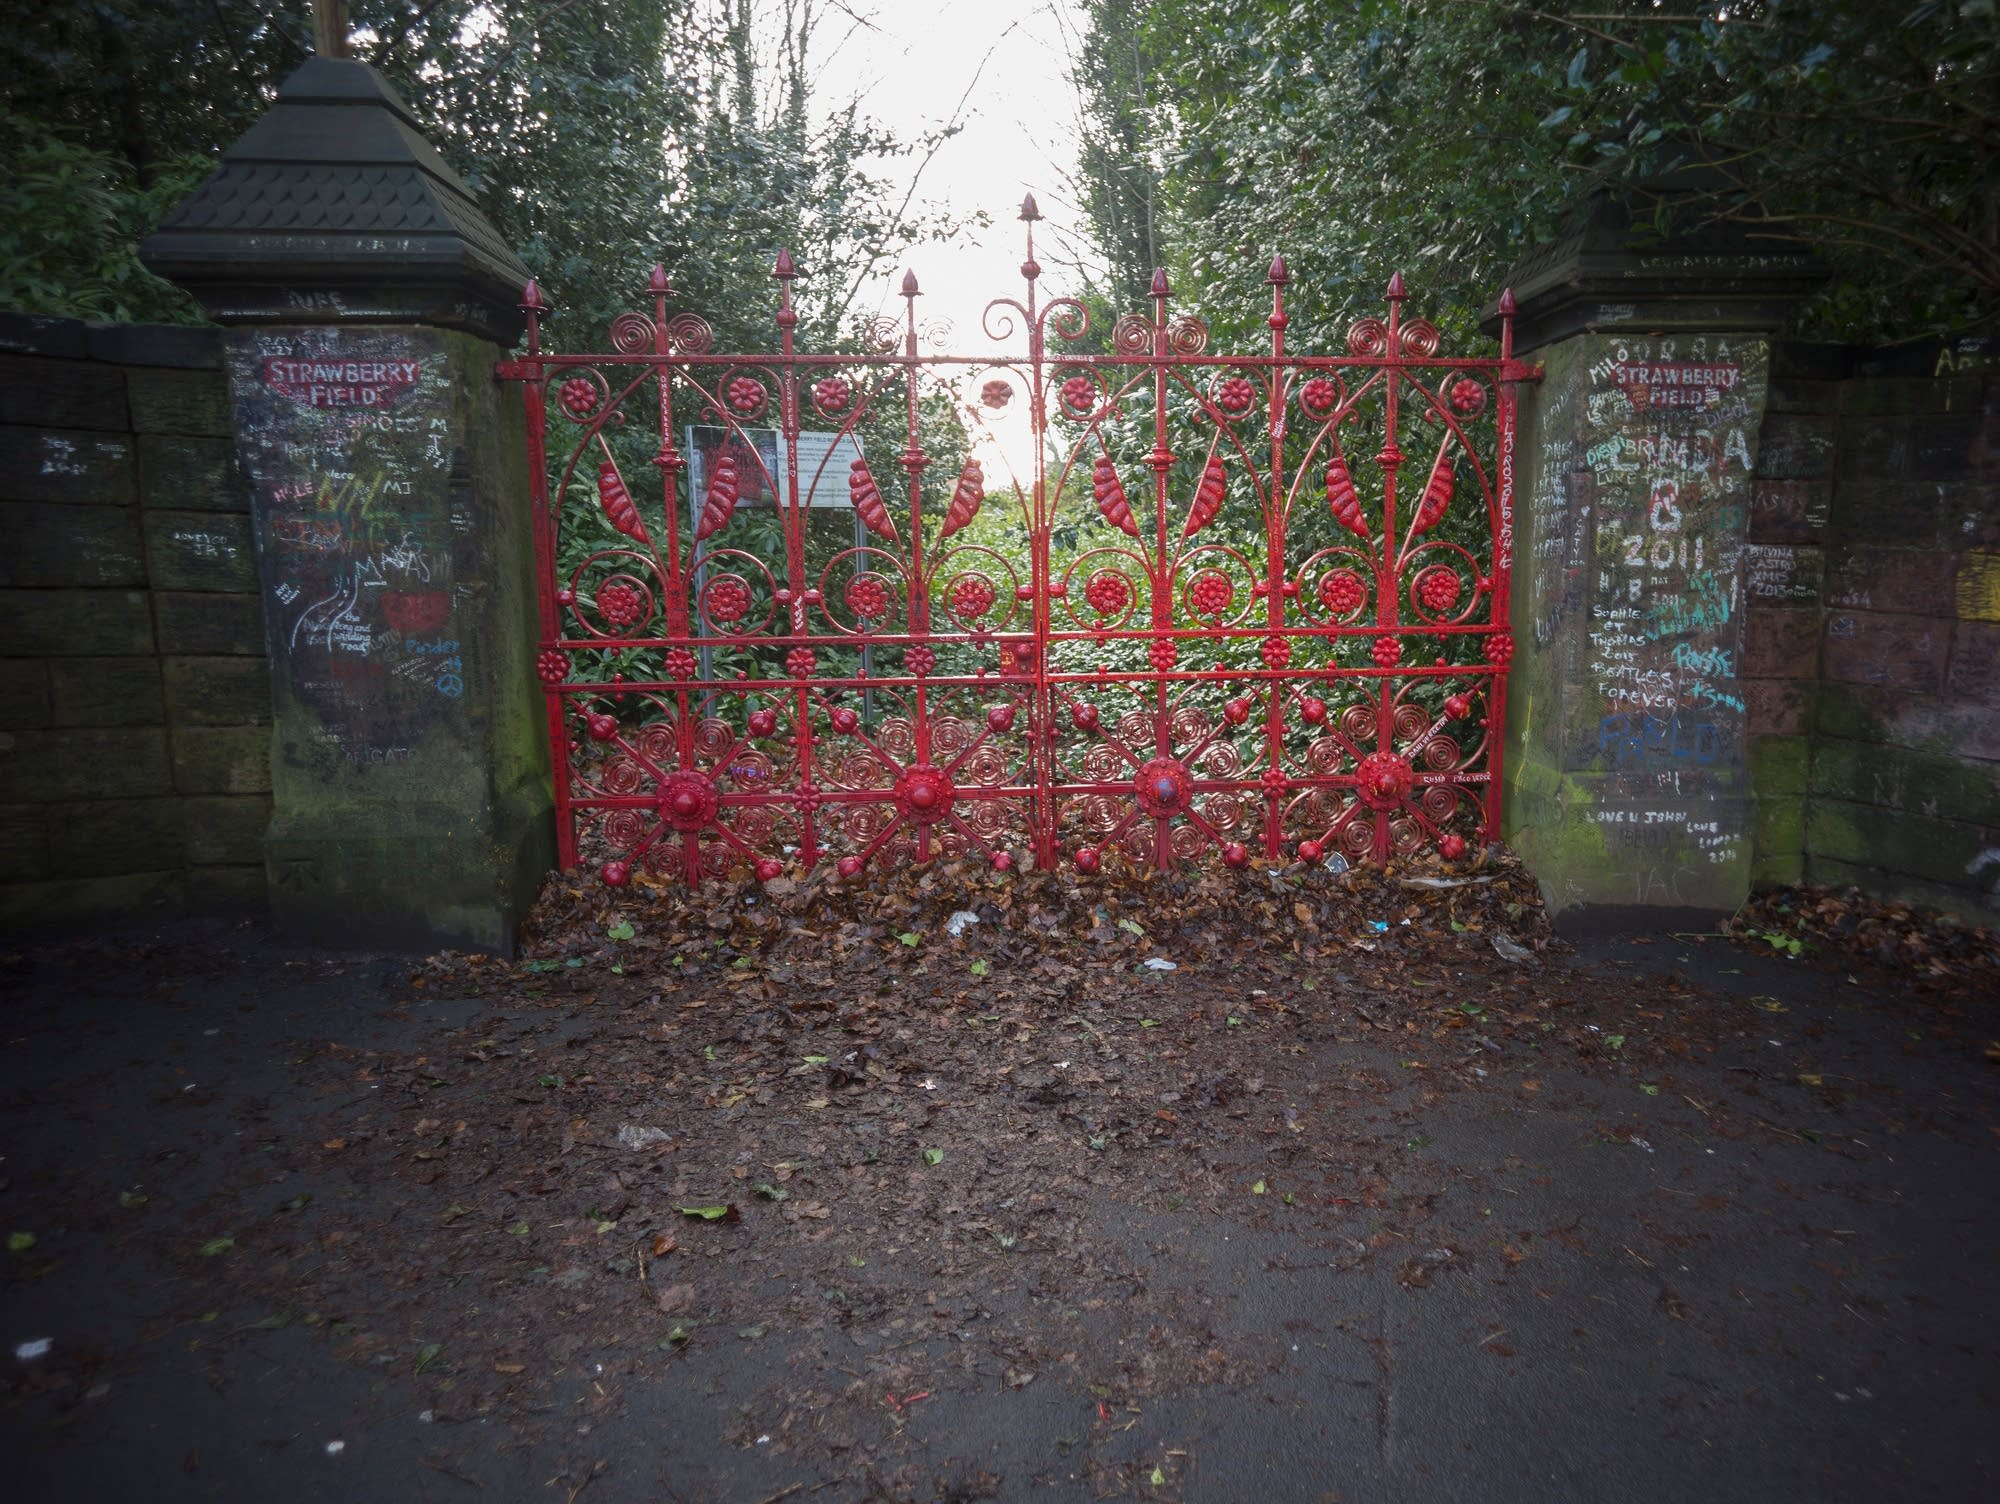 The gates of Strawberry Field in Liverpool.